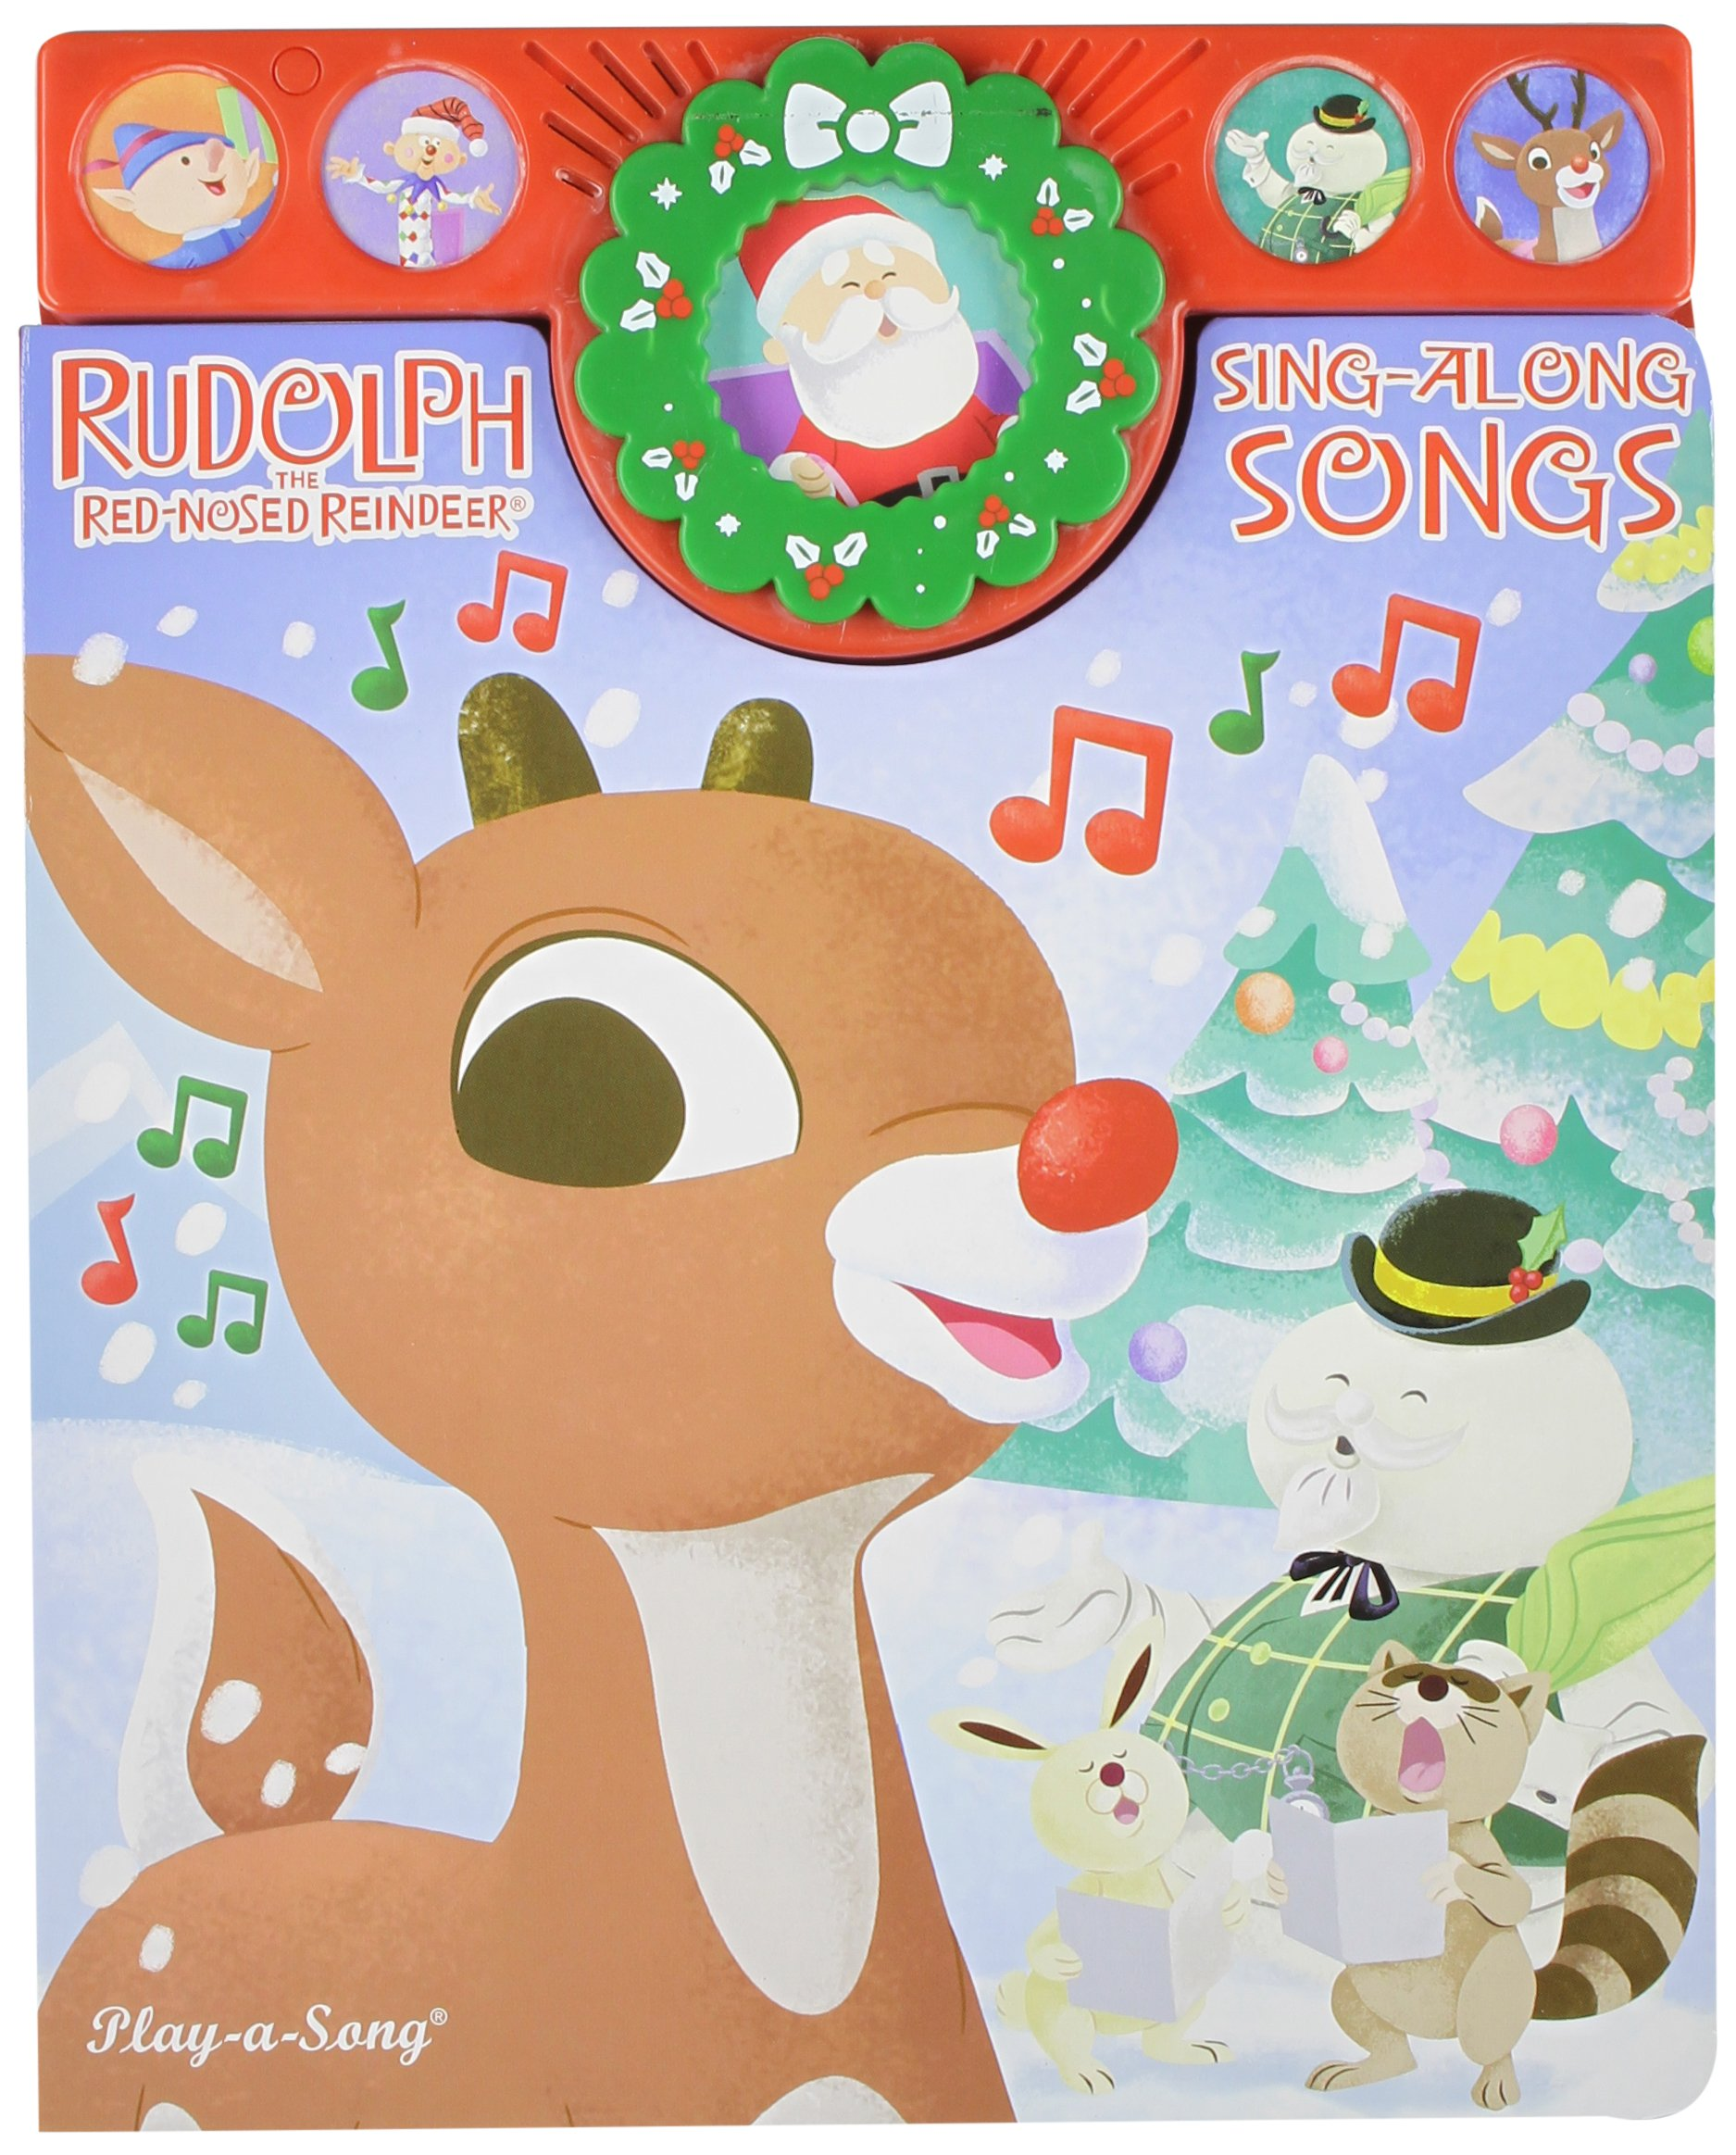 rudolph the red nosed reindeer sing along christmas songs editors of publications international 9781412745550 amazoncom books - Christmas Songs Rudolph The Red Nosed Reindeer